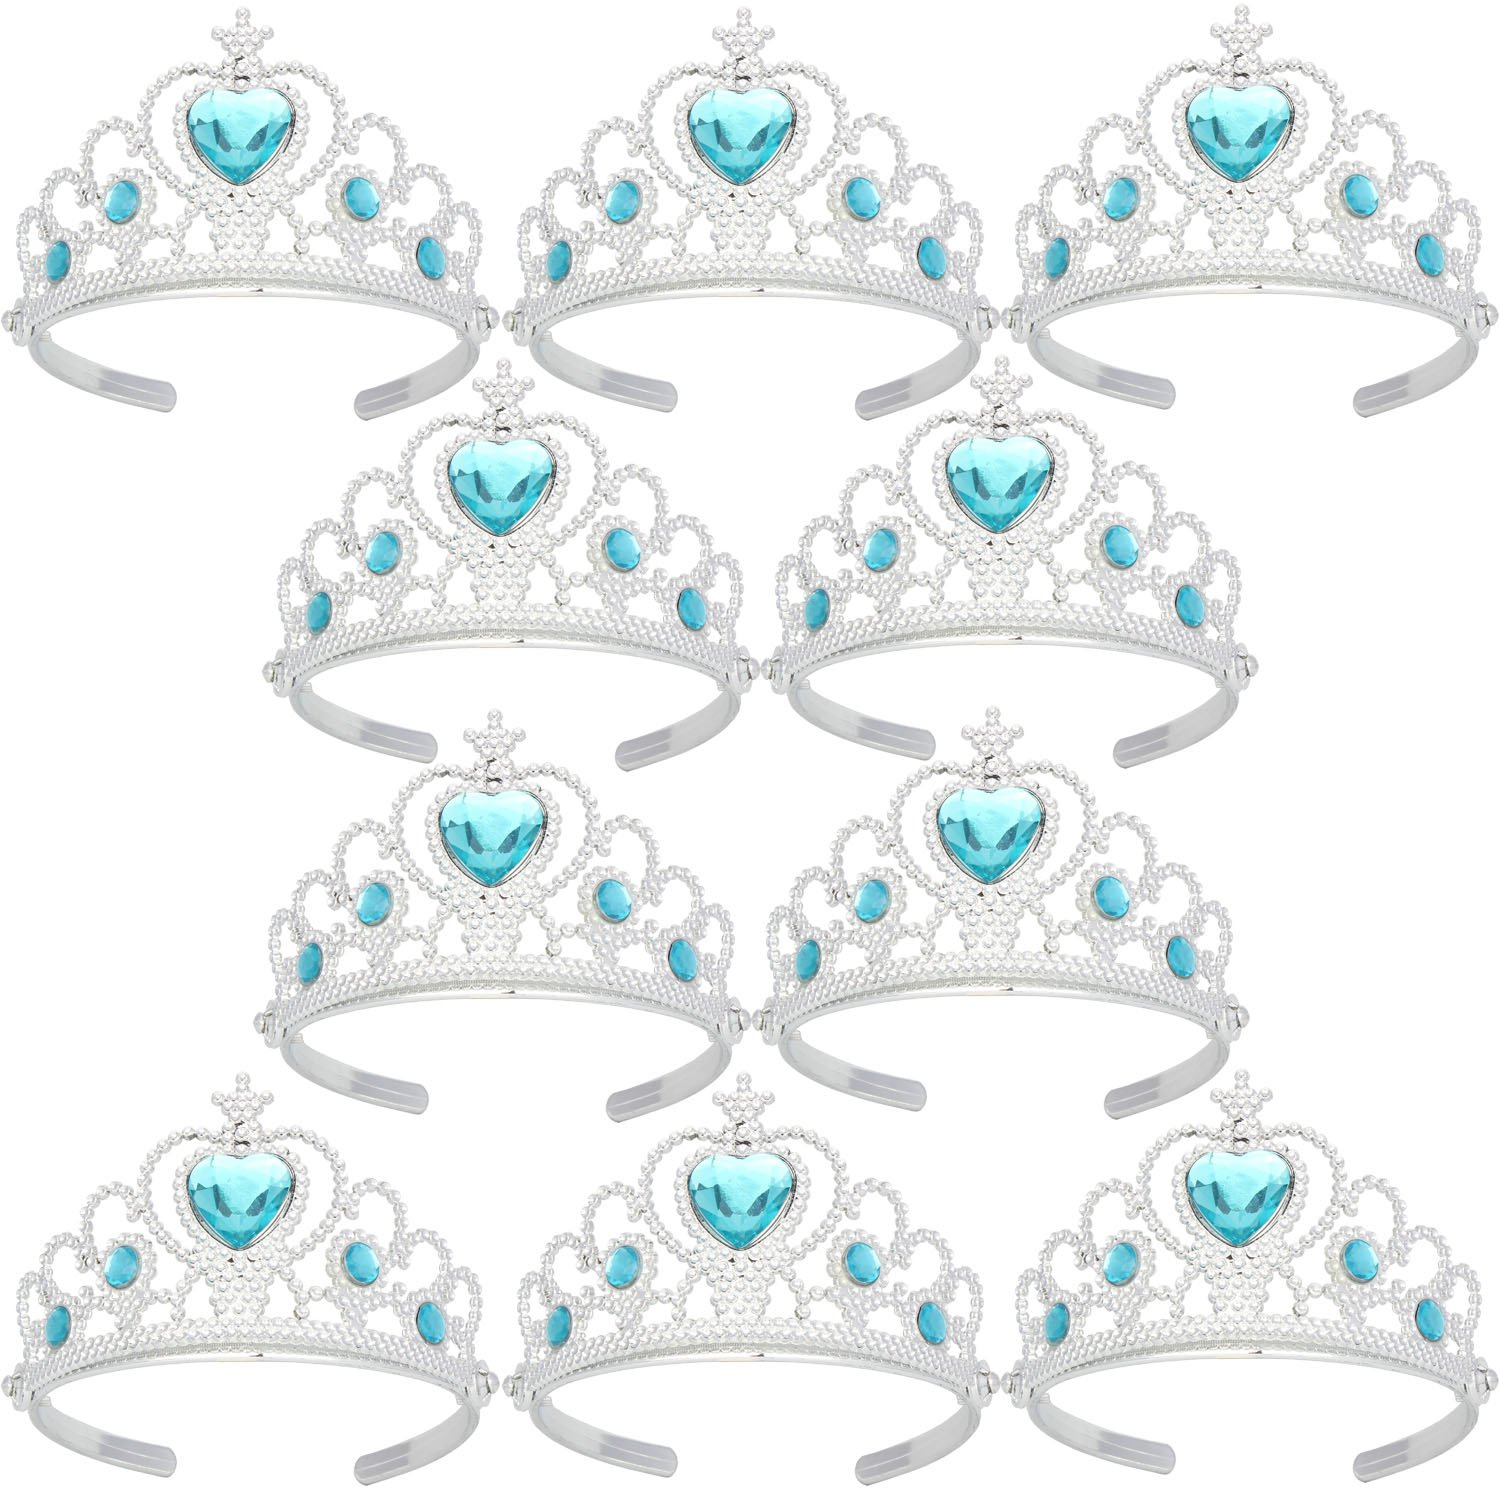 Tiaras and Crowns For Little Girls Toys Silver Plating Plastic Tiaras Sky Blue(10 Pack)